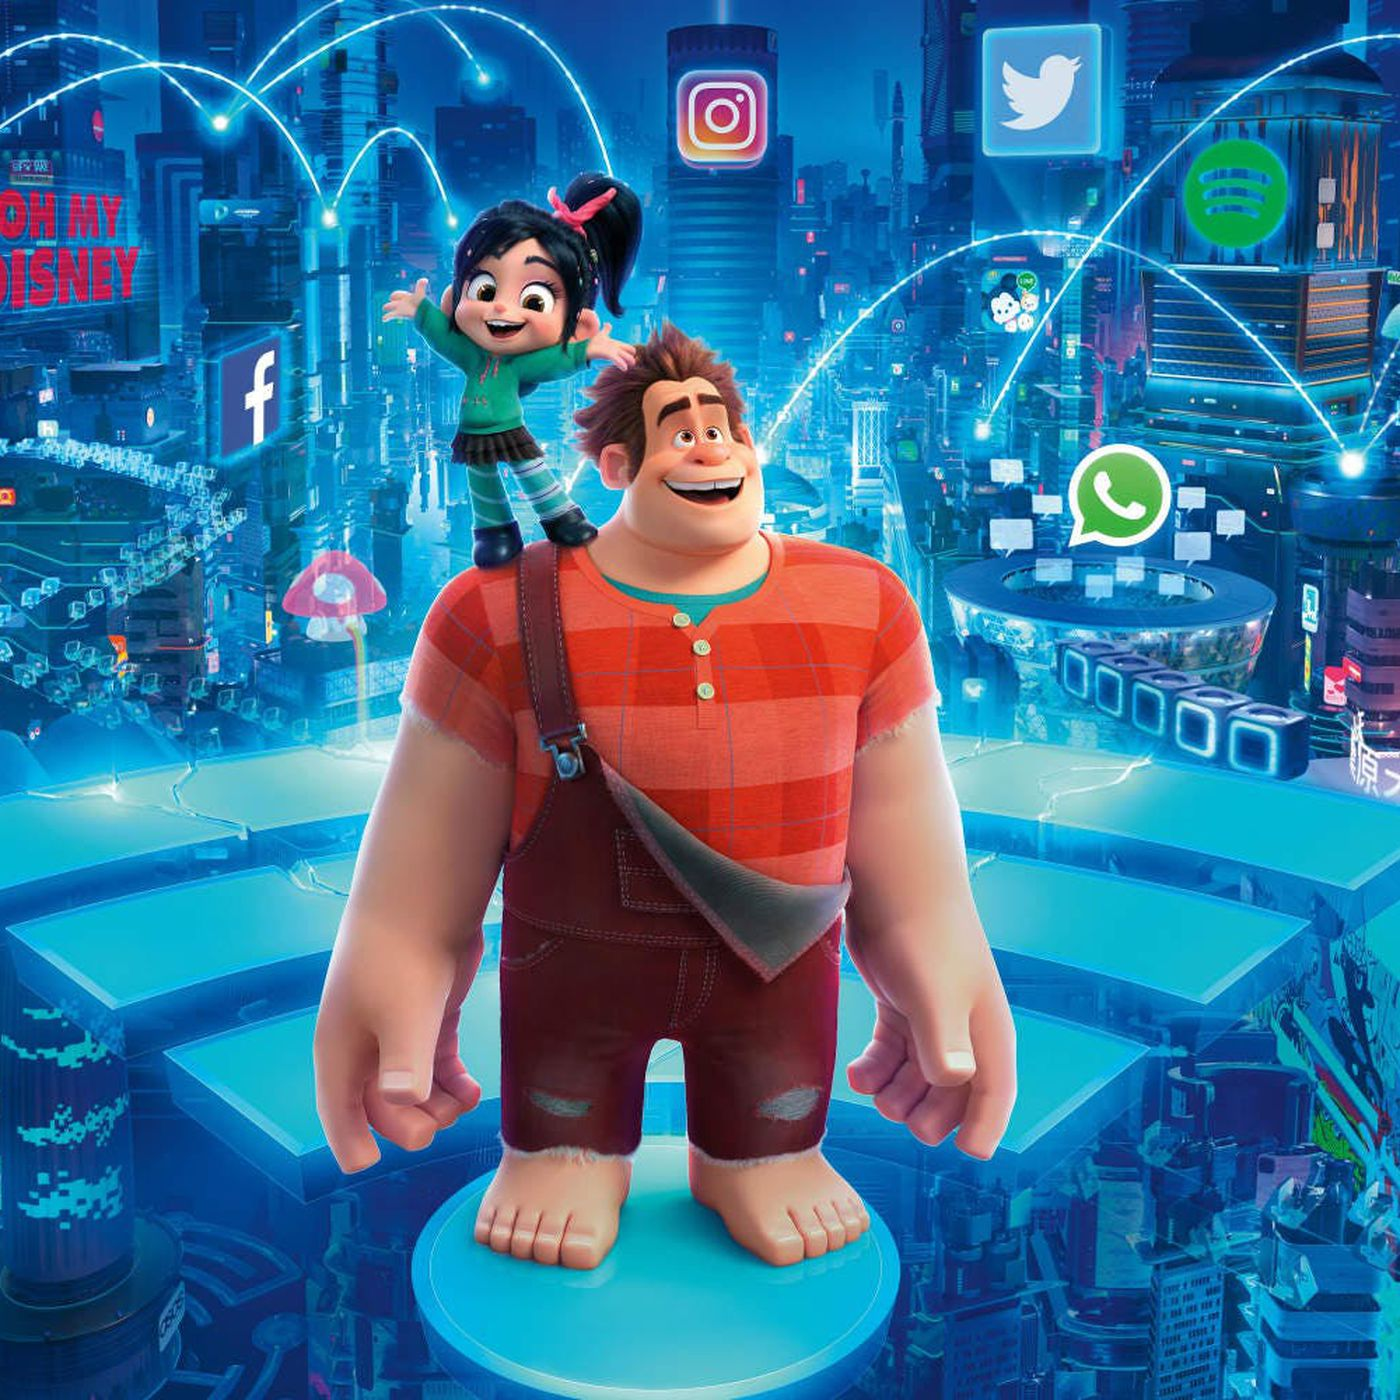 Ralph Breaks the Internet's end-credits scene and Disney